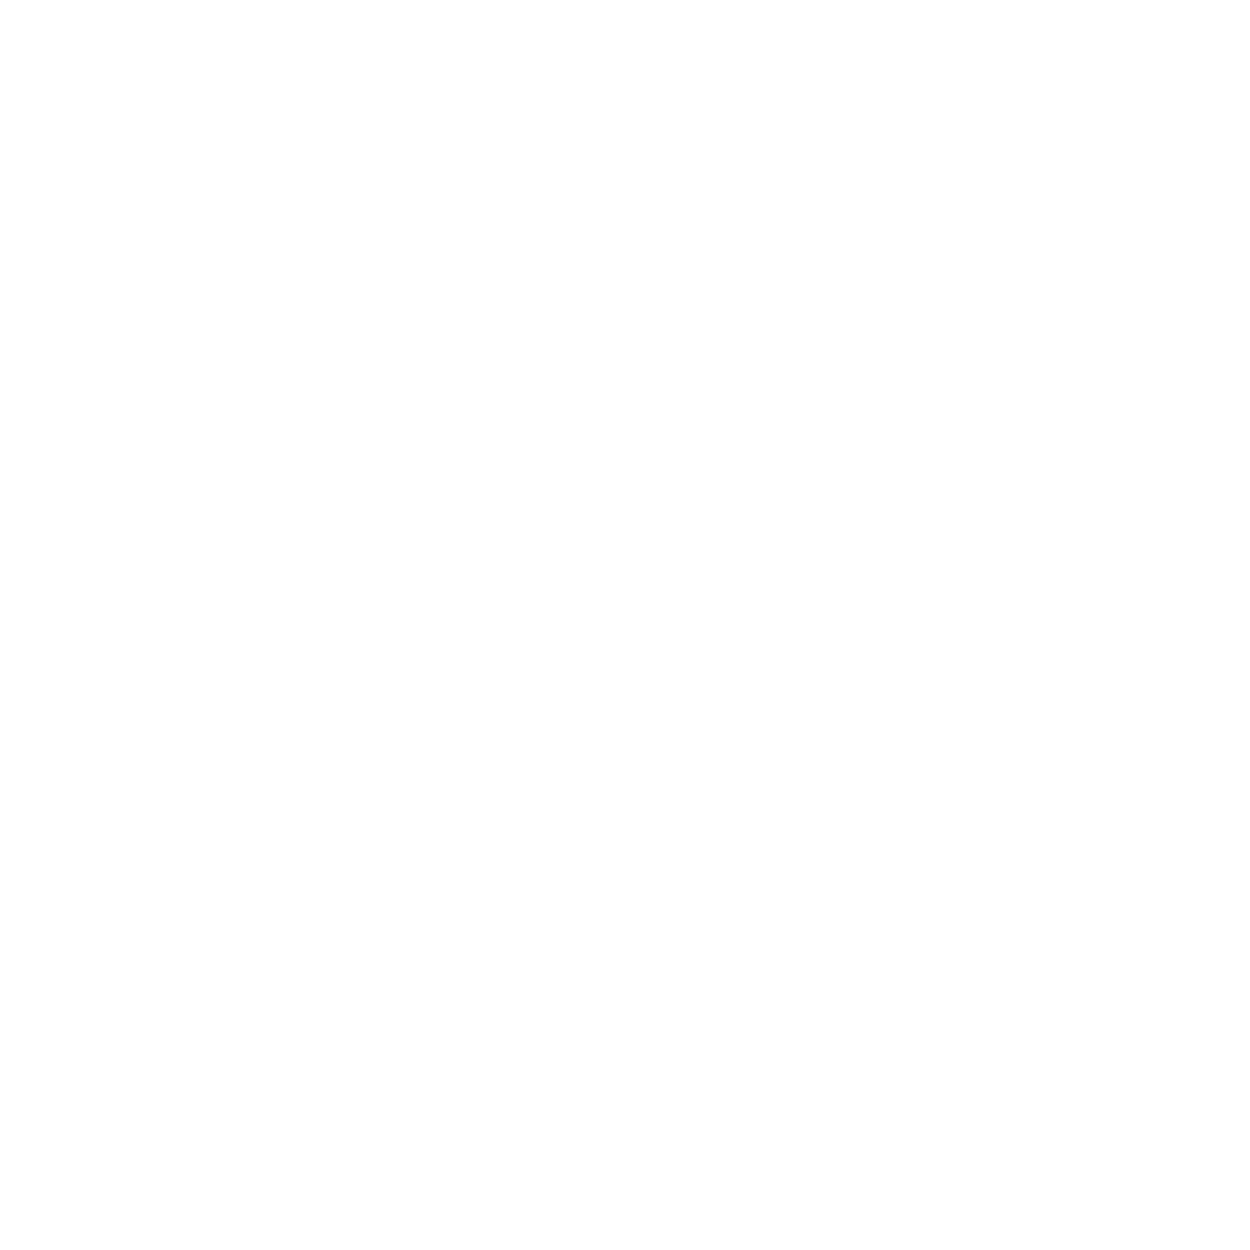 First West Credit Union logo white